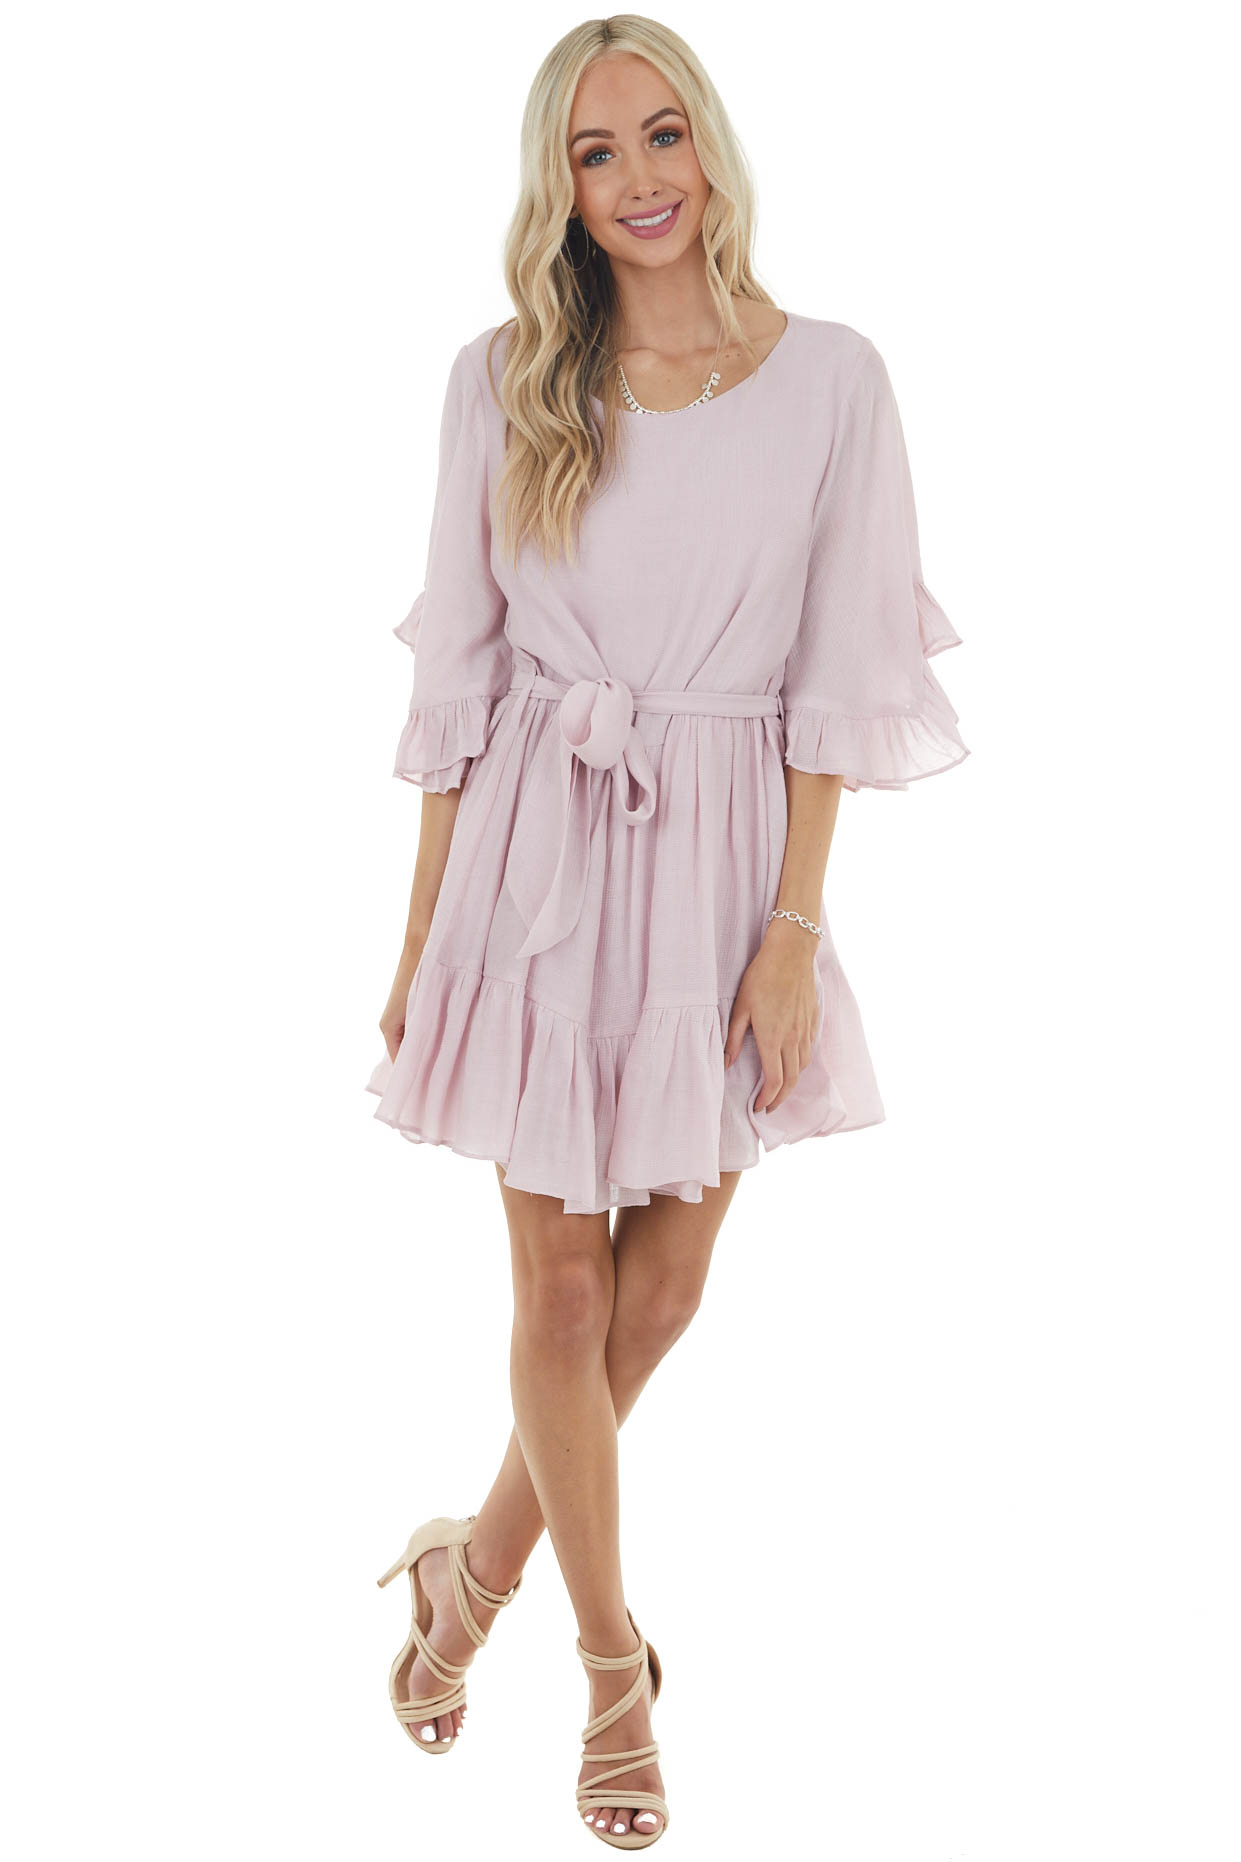 Dusty Blush Textured Woven Dress with Half Ruffle Sleeves